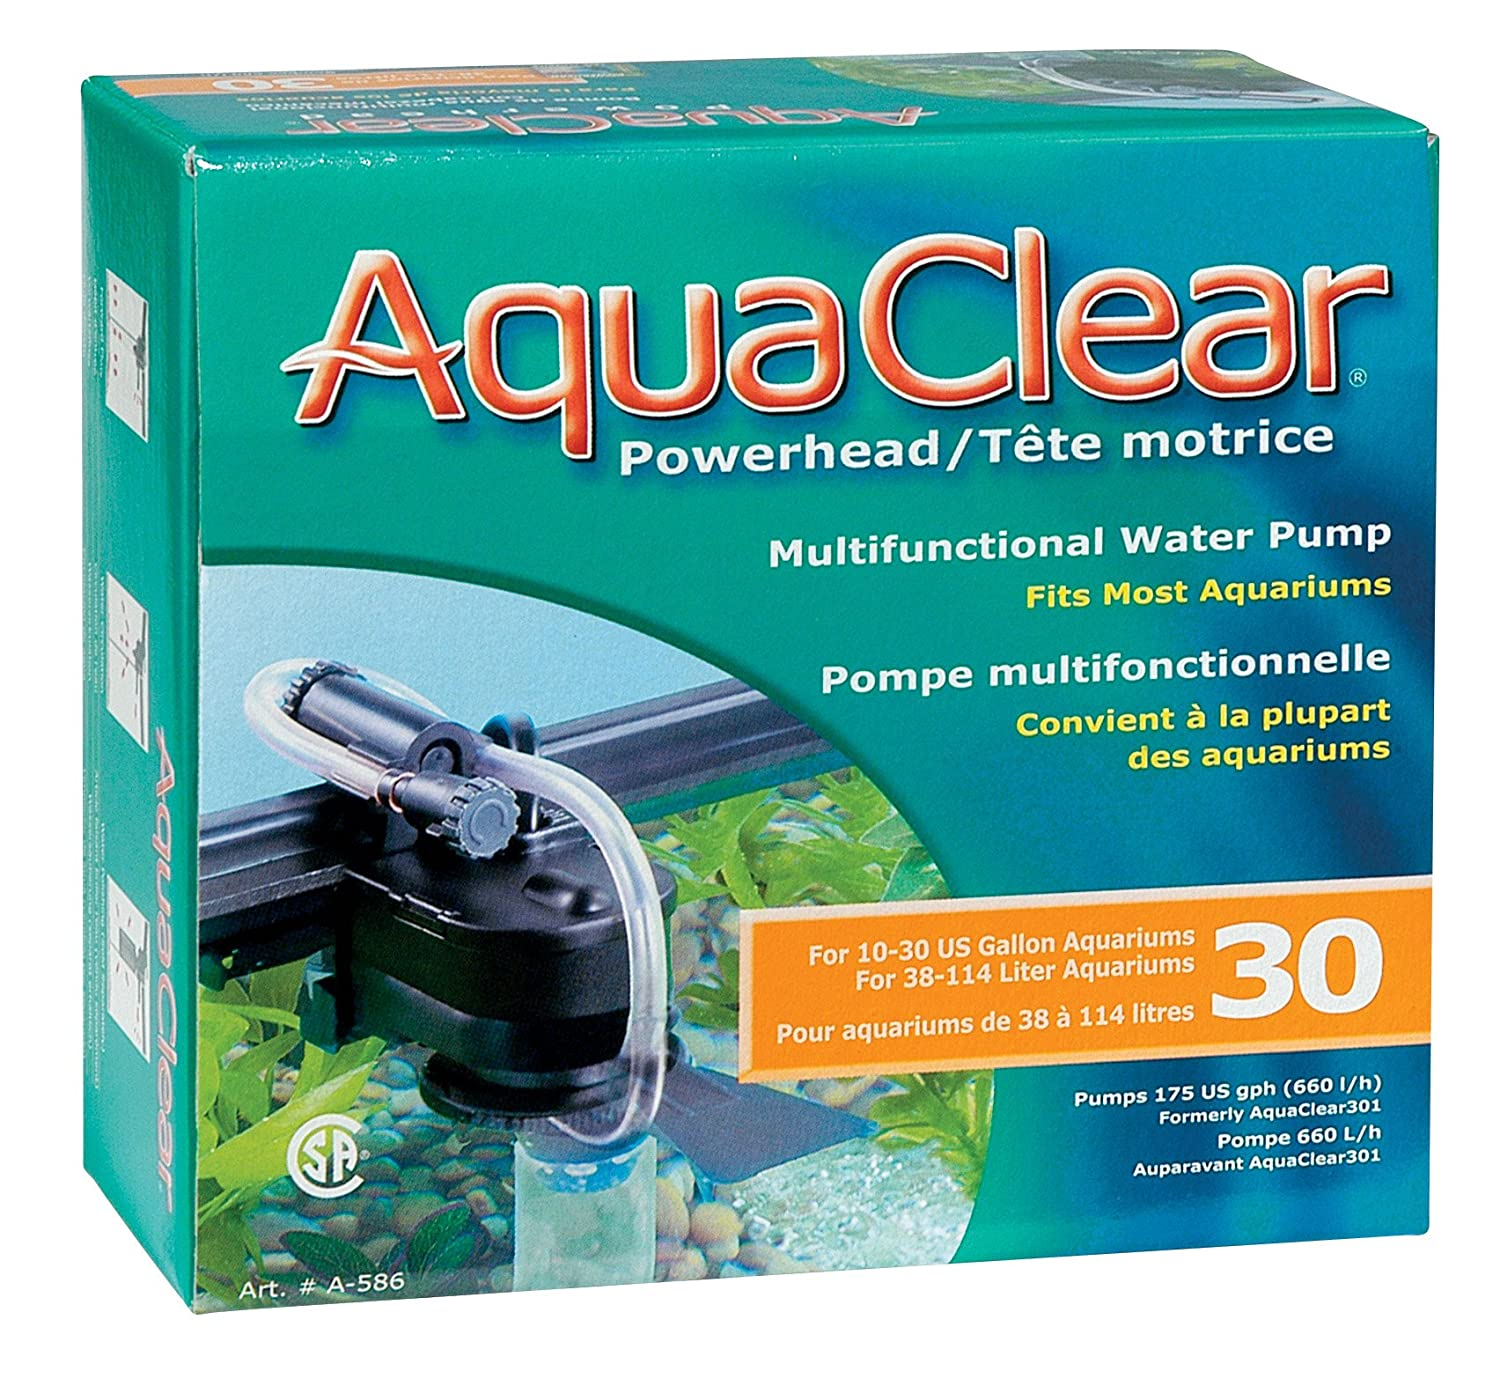 Amazon.com : AquaClear Powerhead 30 - 110 V, 175 Gallons per Hour ...